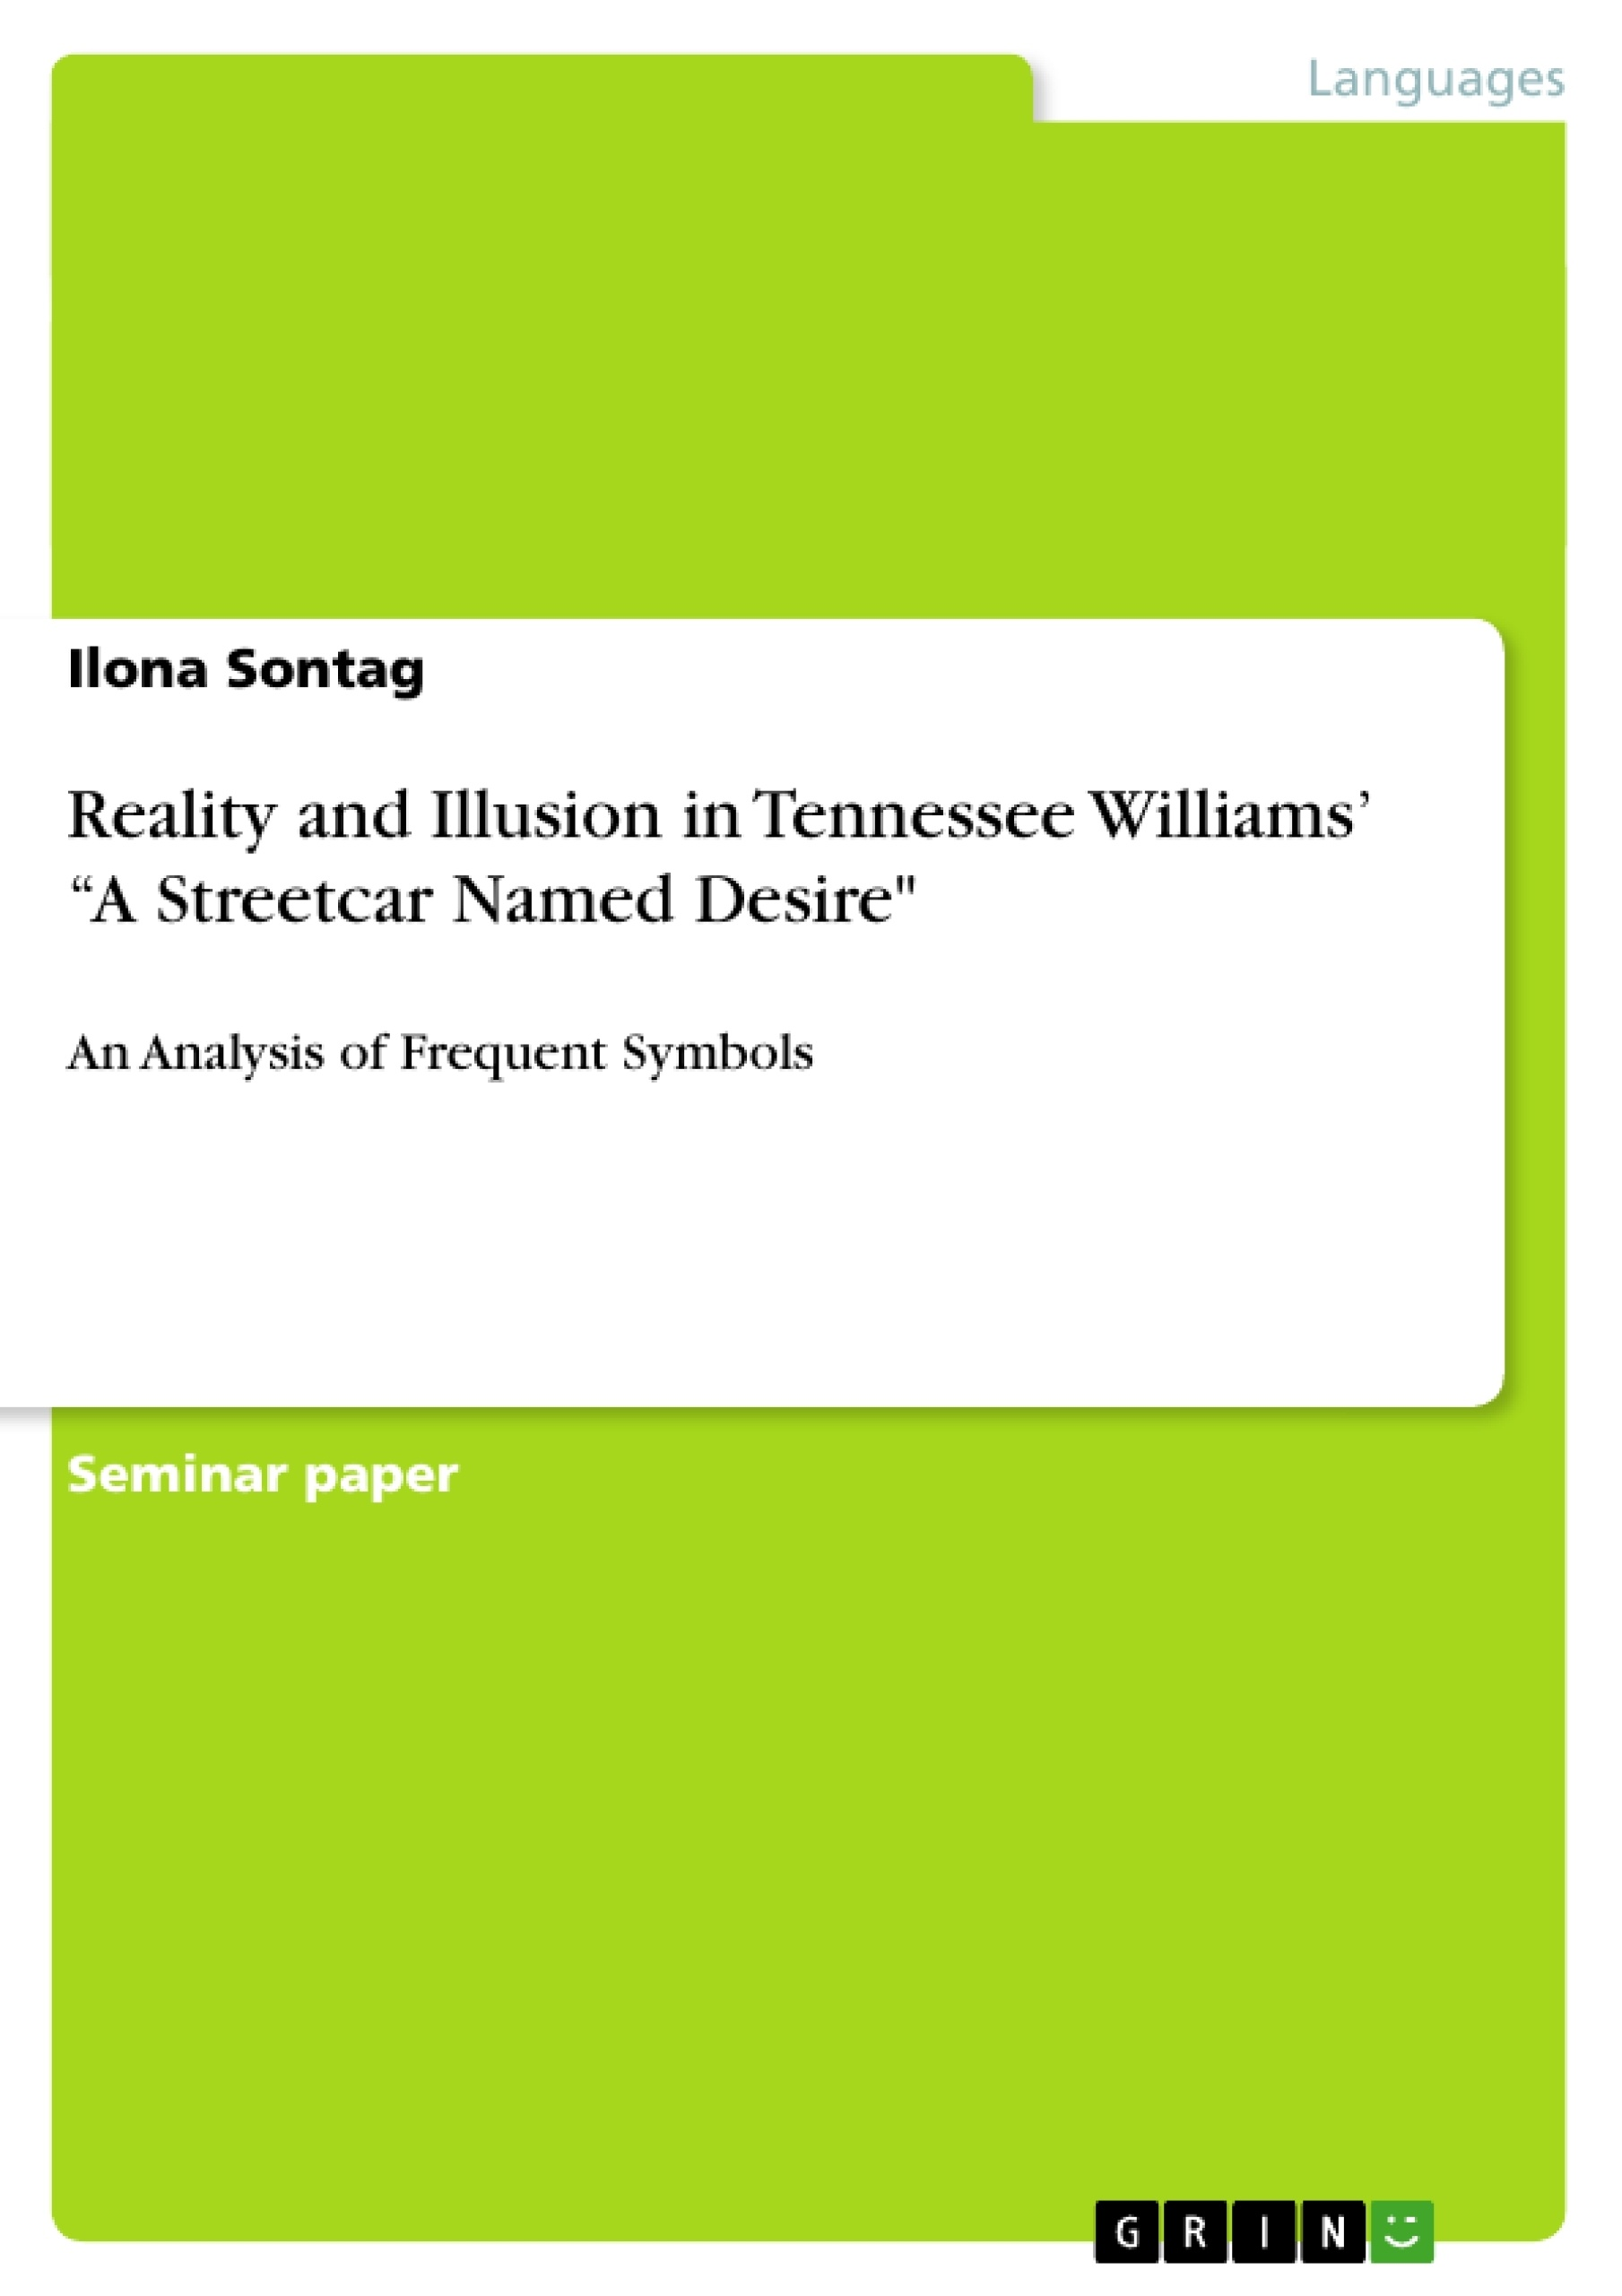 Essay On Streetcar Named Desire